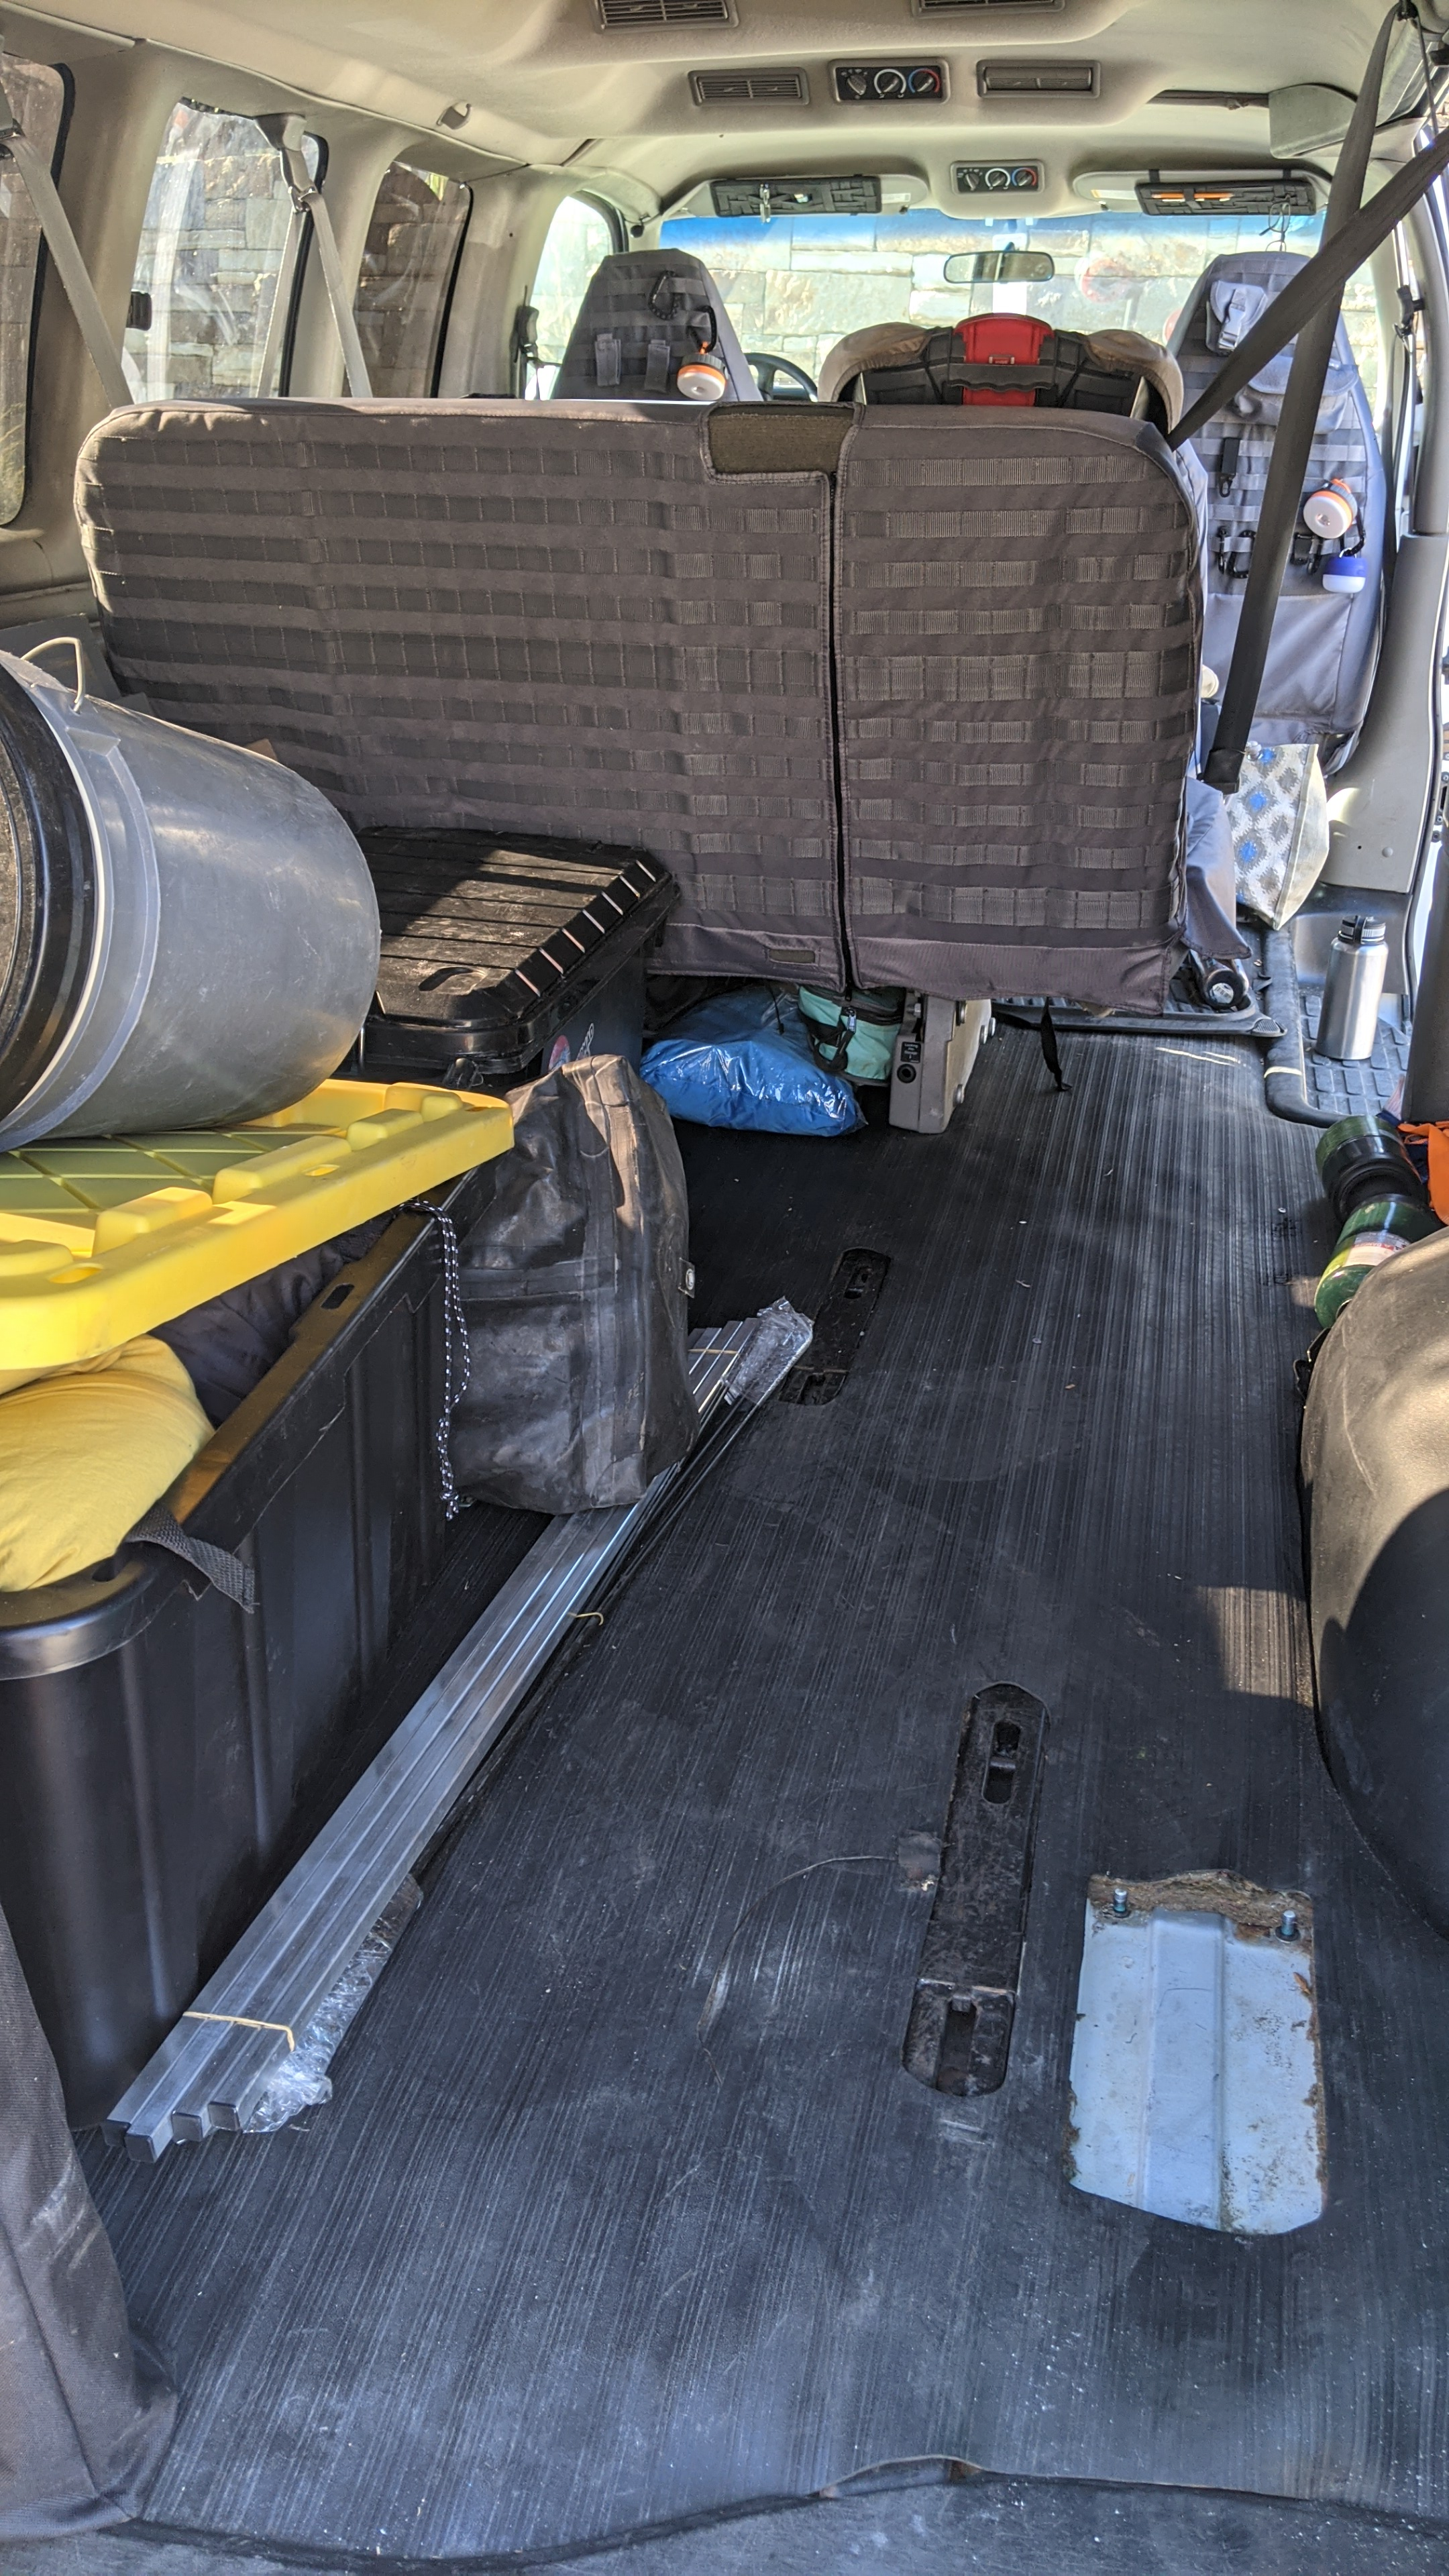 Large storage area behind seat with optional/moveable bed platform. Gmc Savanna 2001